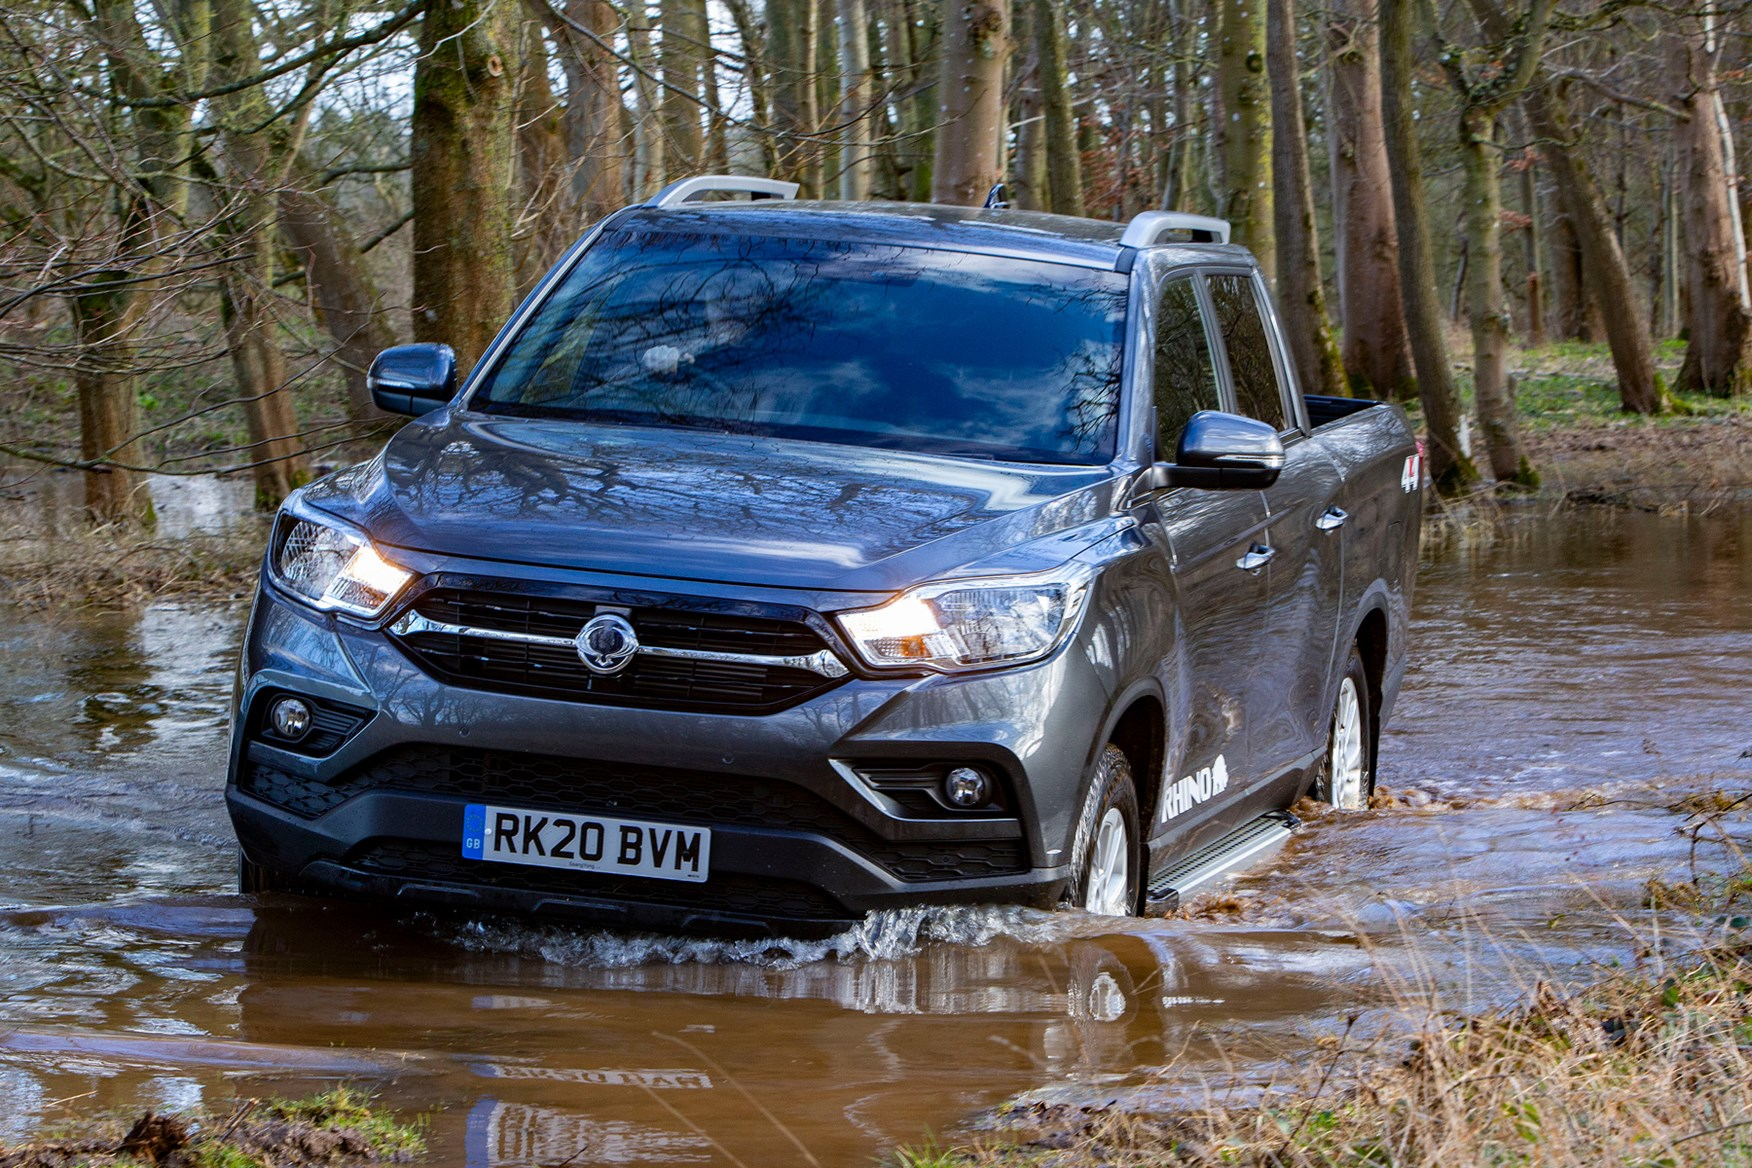 SsangYong Musso review, 2020, Rhino LWB, front view, driving through river